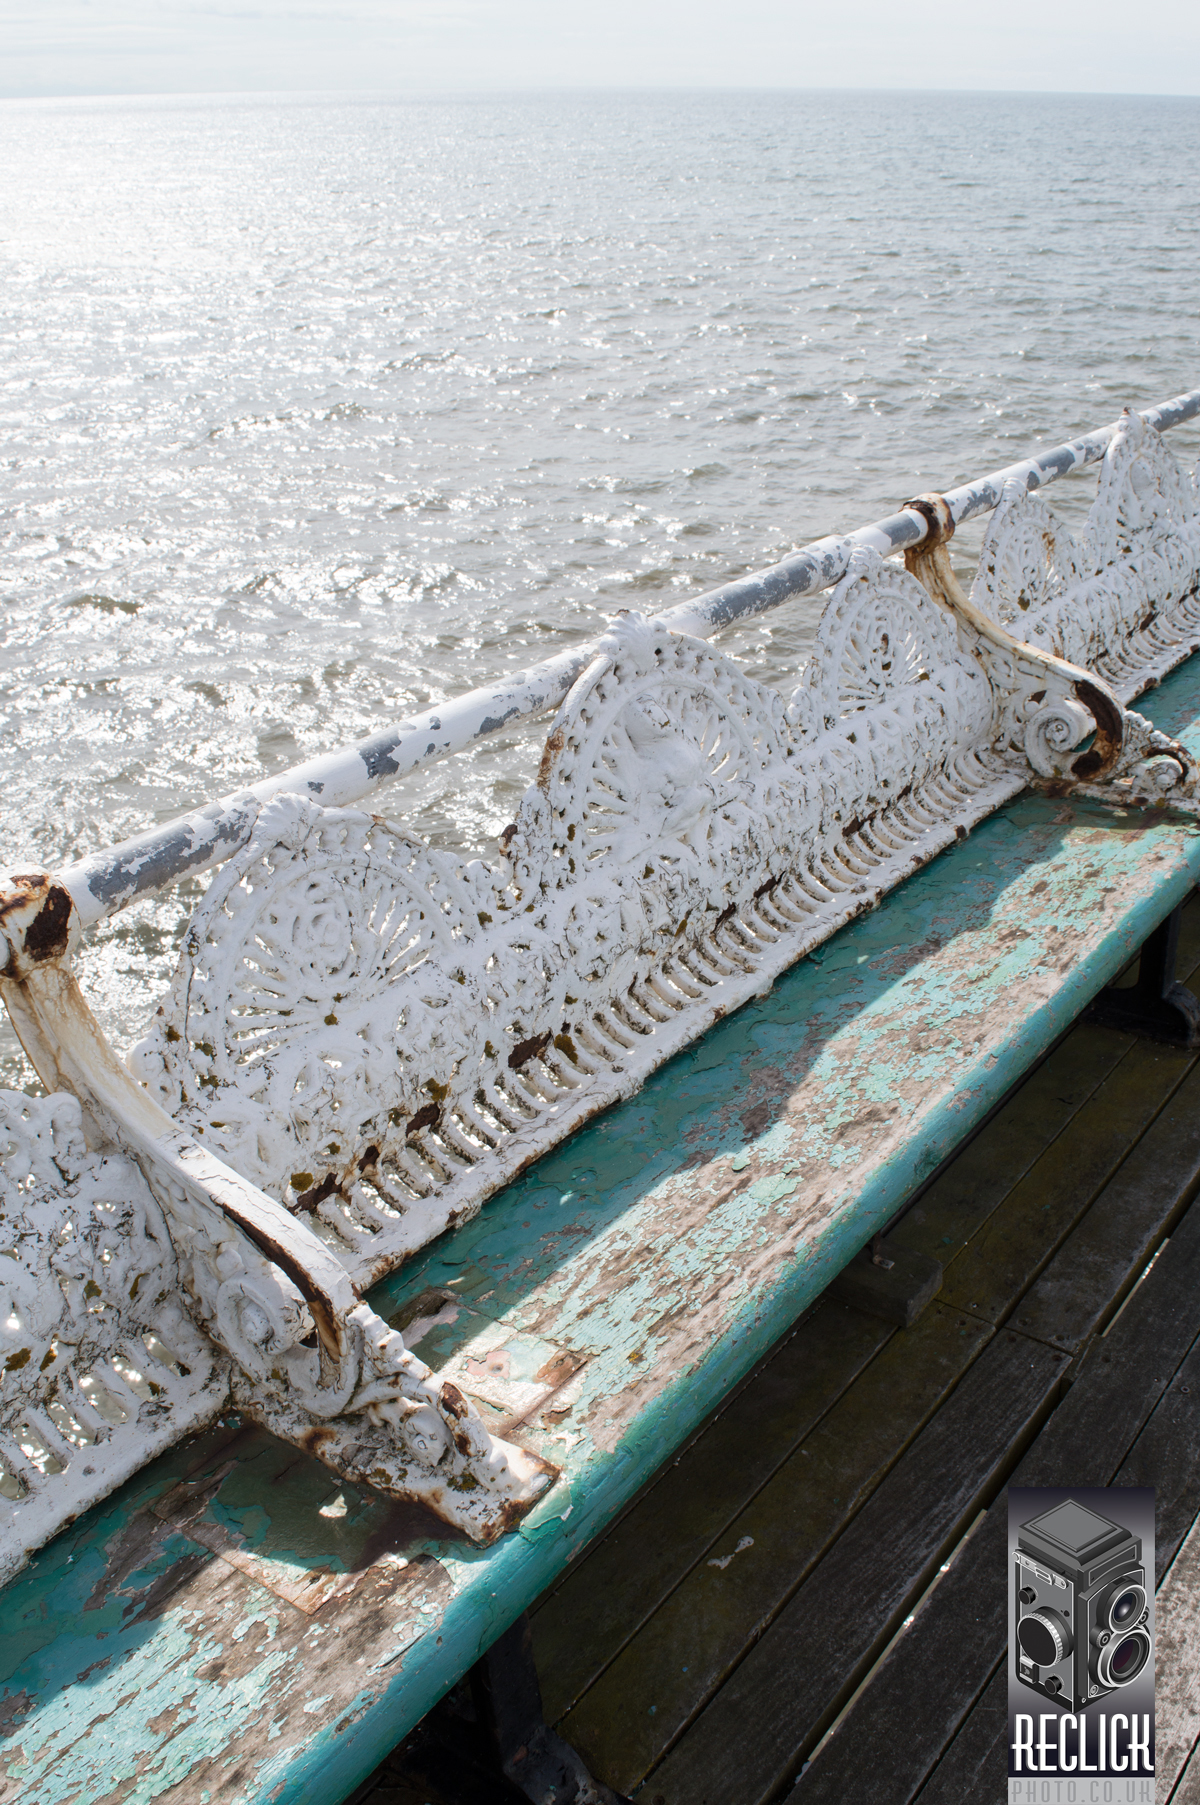 Seating, North Pier, Pier, Blackpool, Lancashire, England, Victorian, architecture,distressed, weathered.